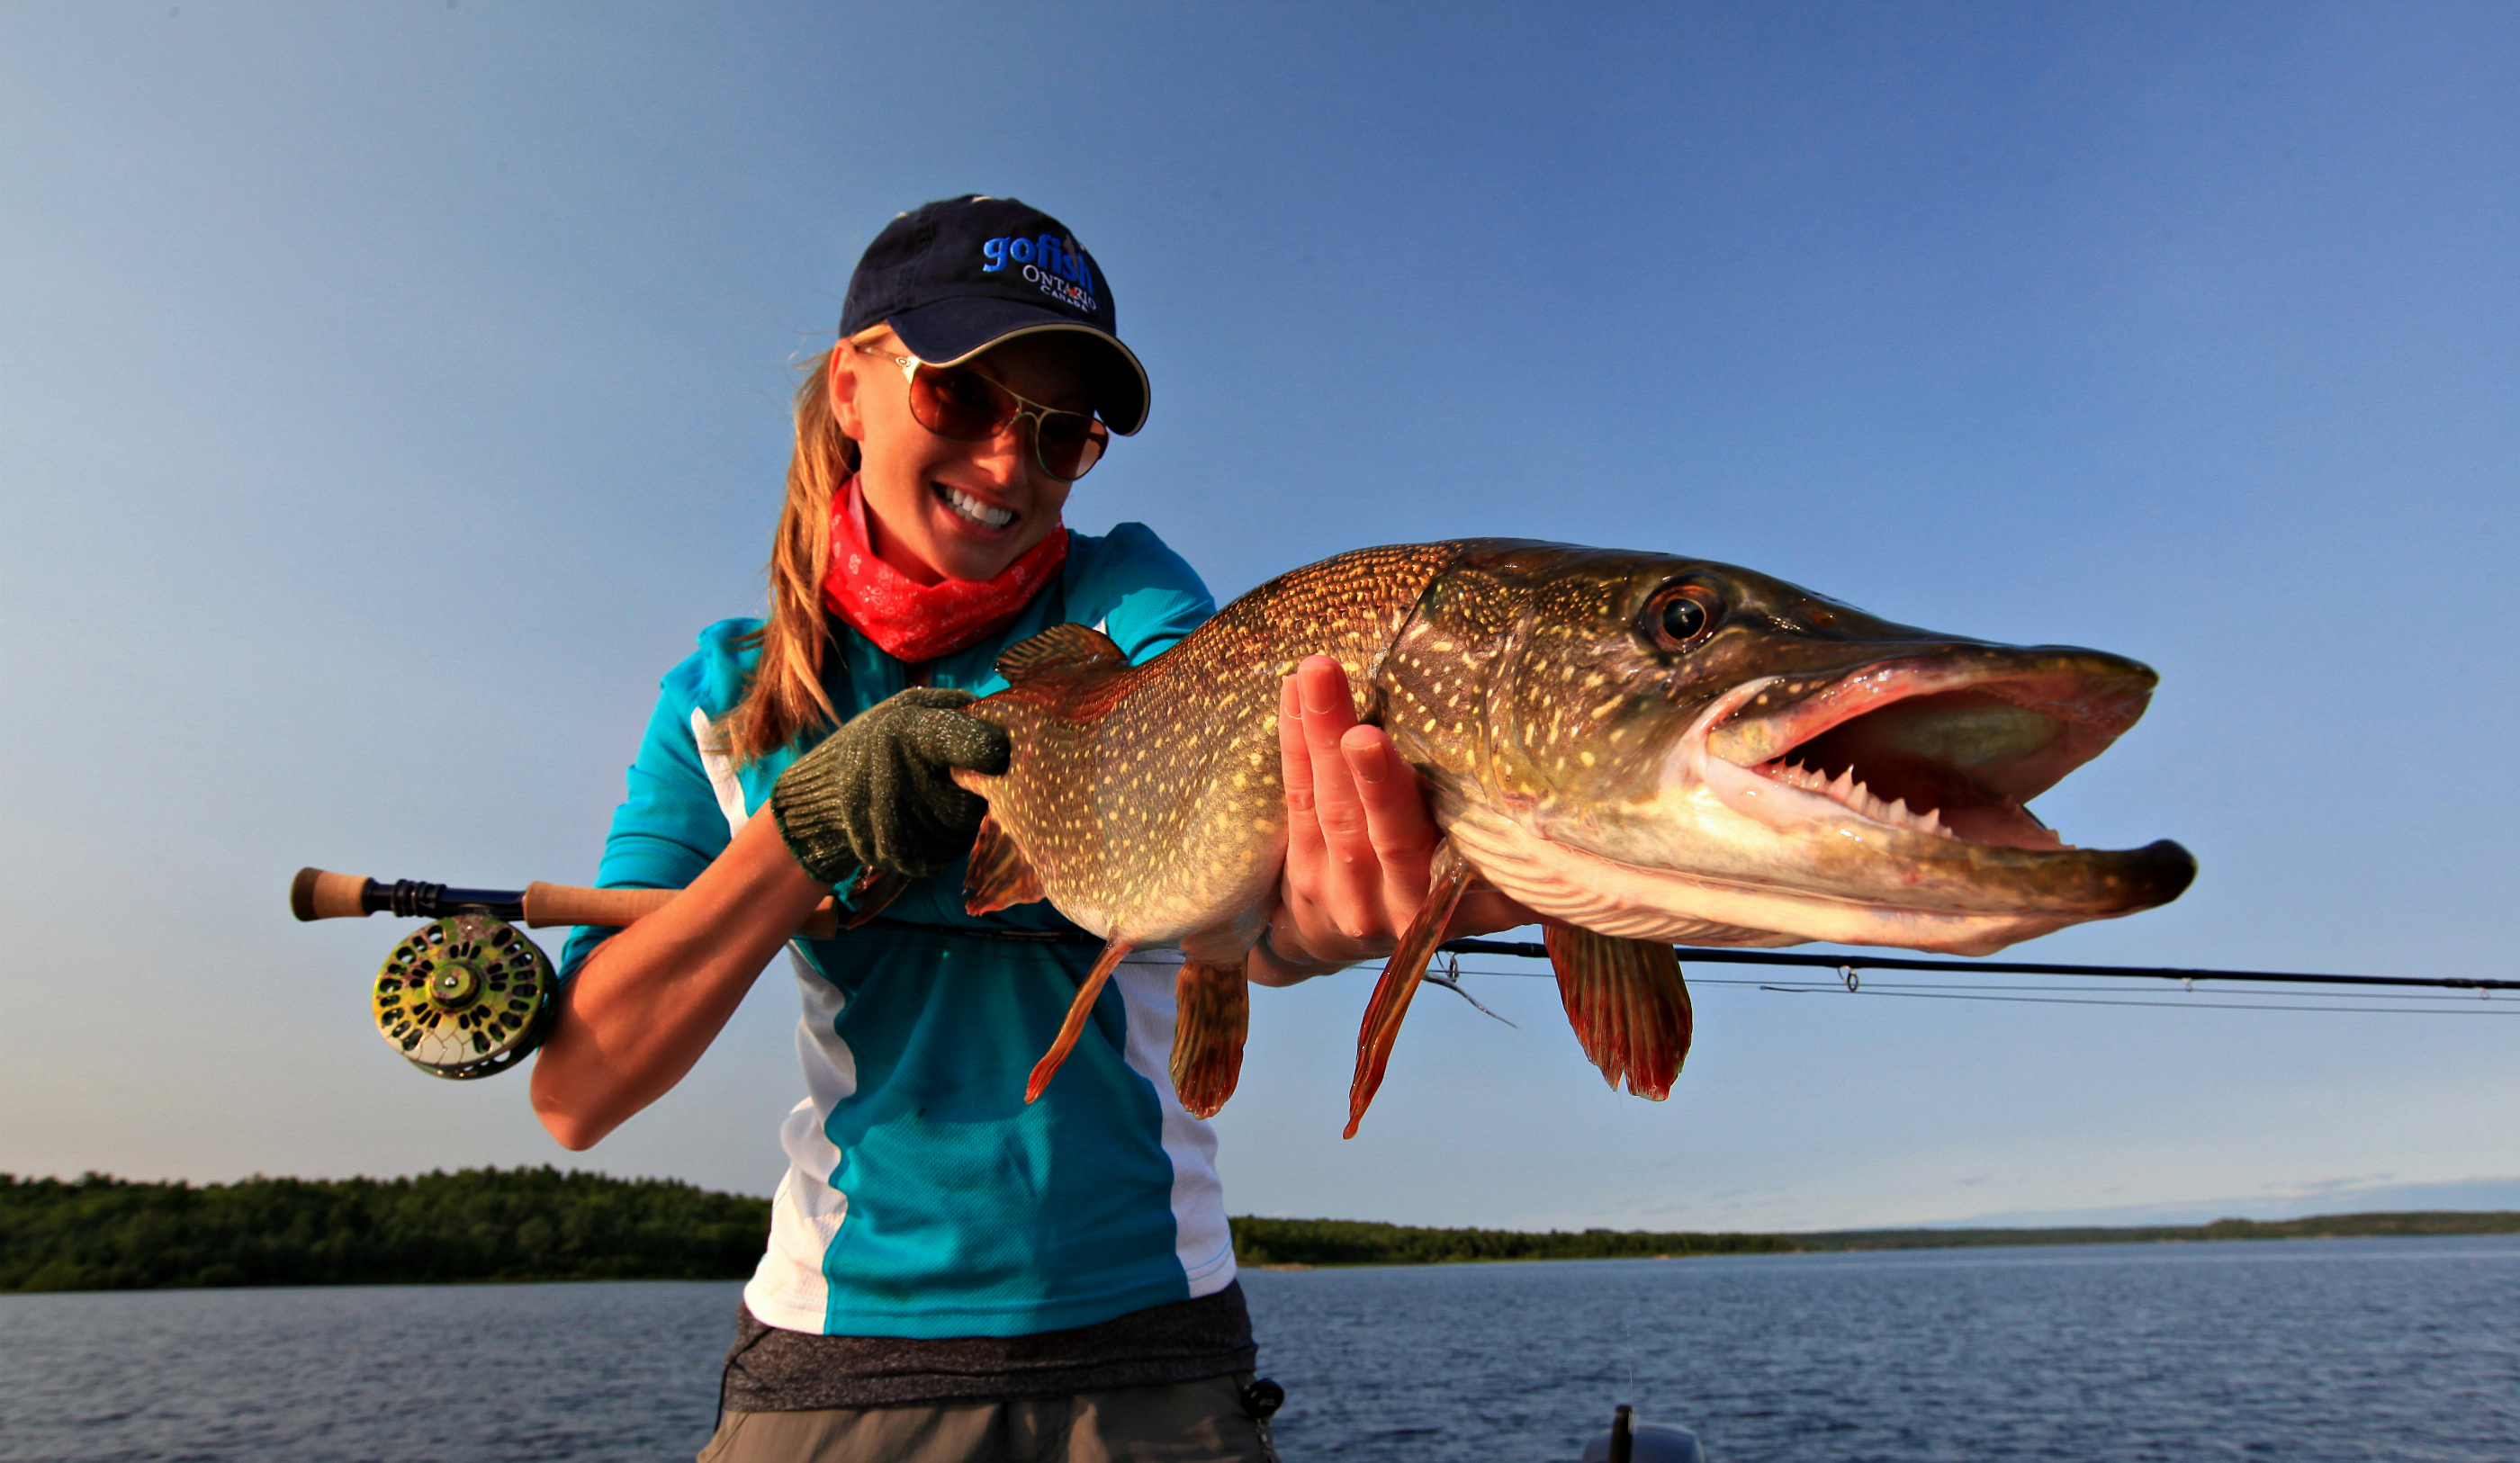 Photos of the day rebekka red reels them in orvis news for Orvis fly fishing